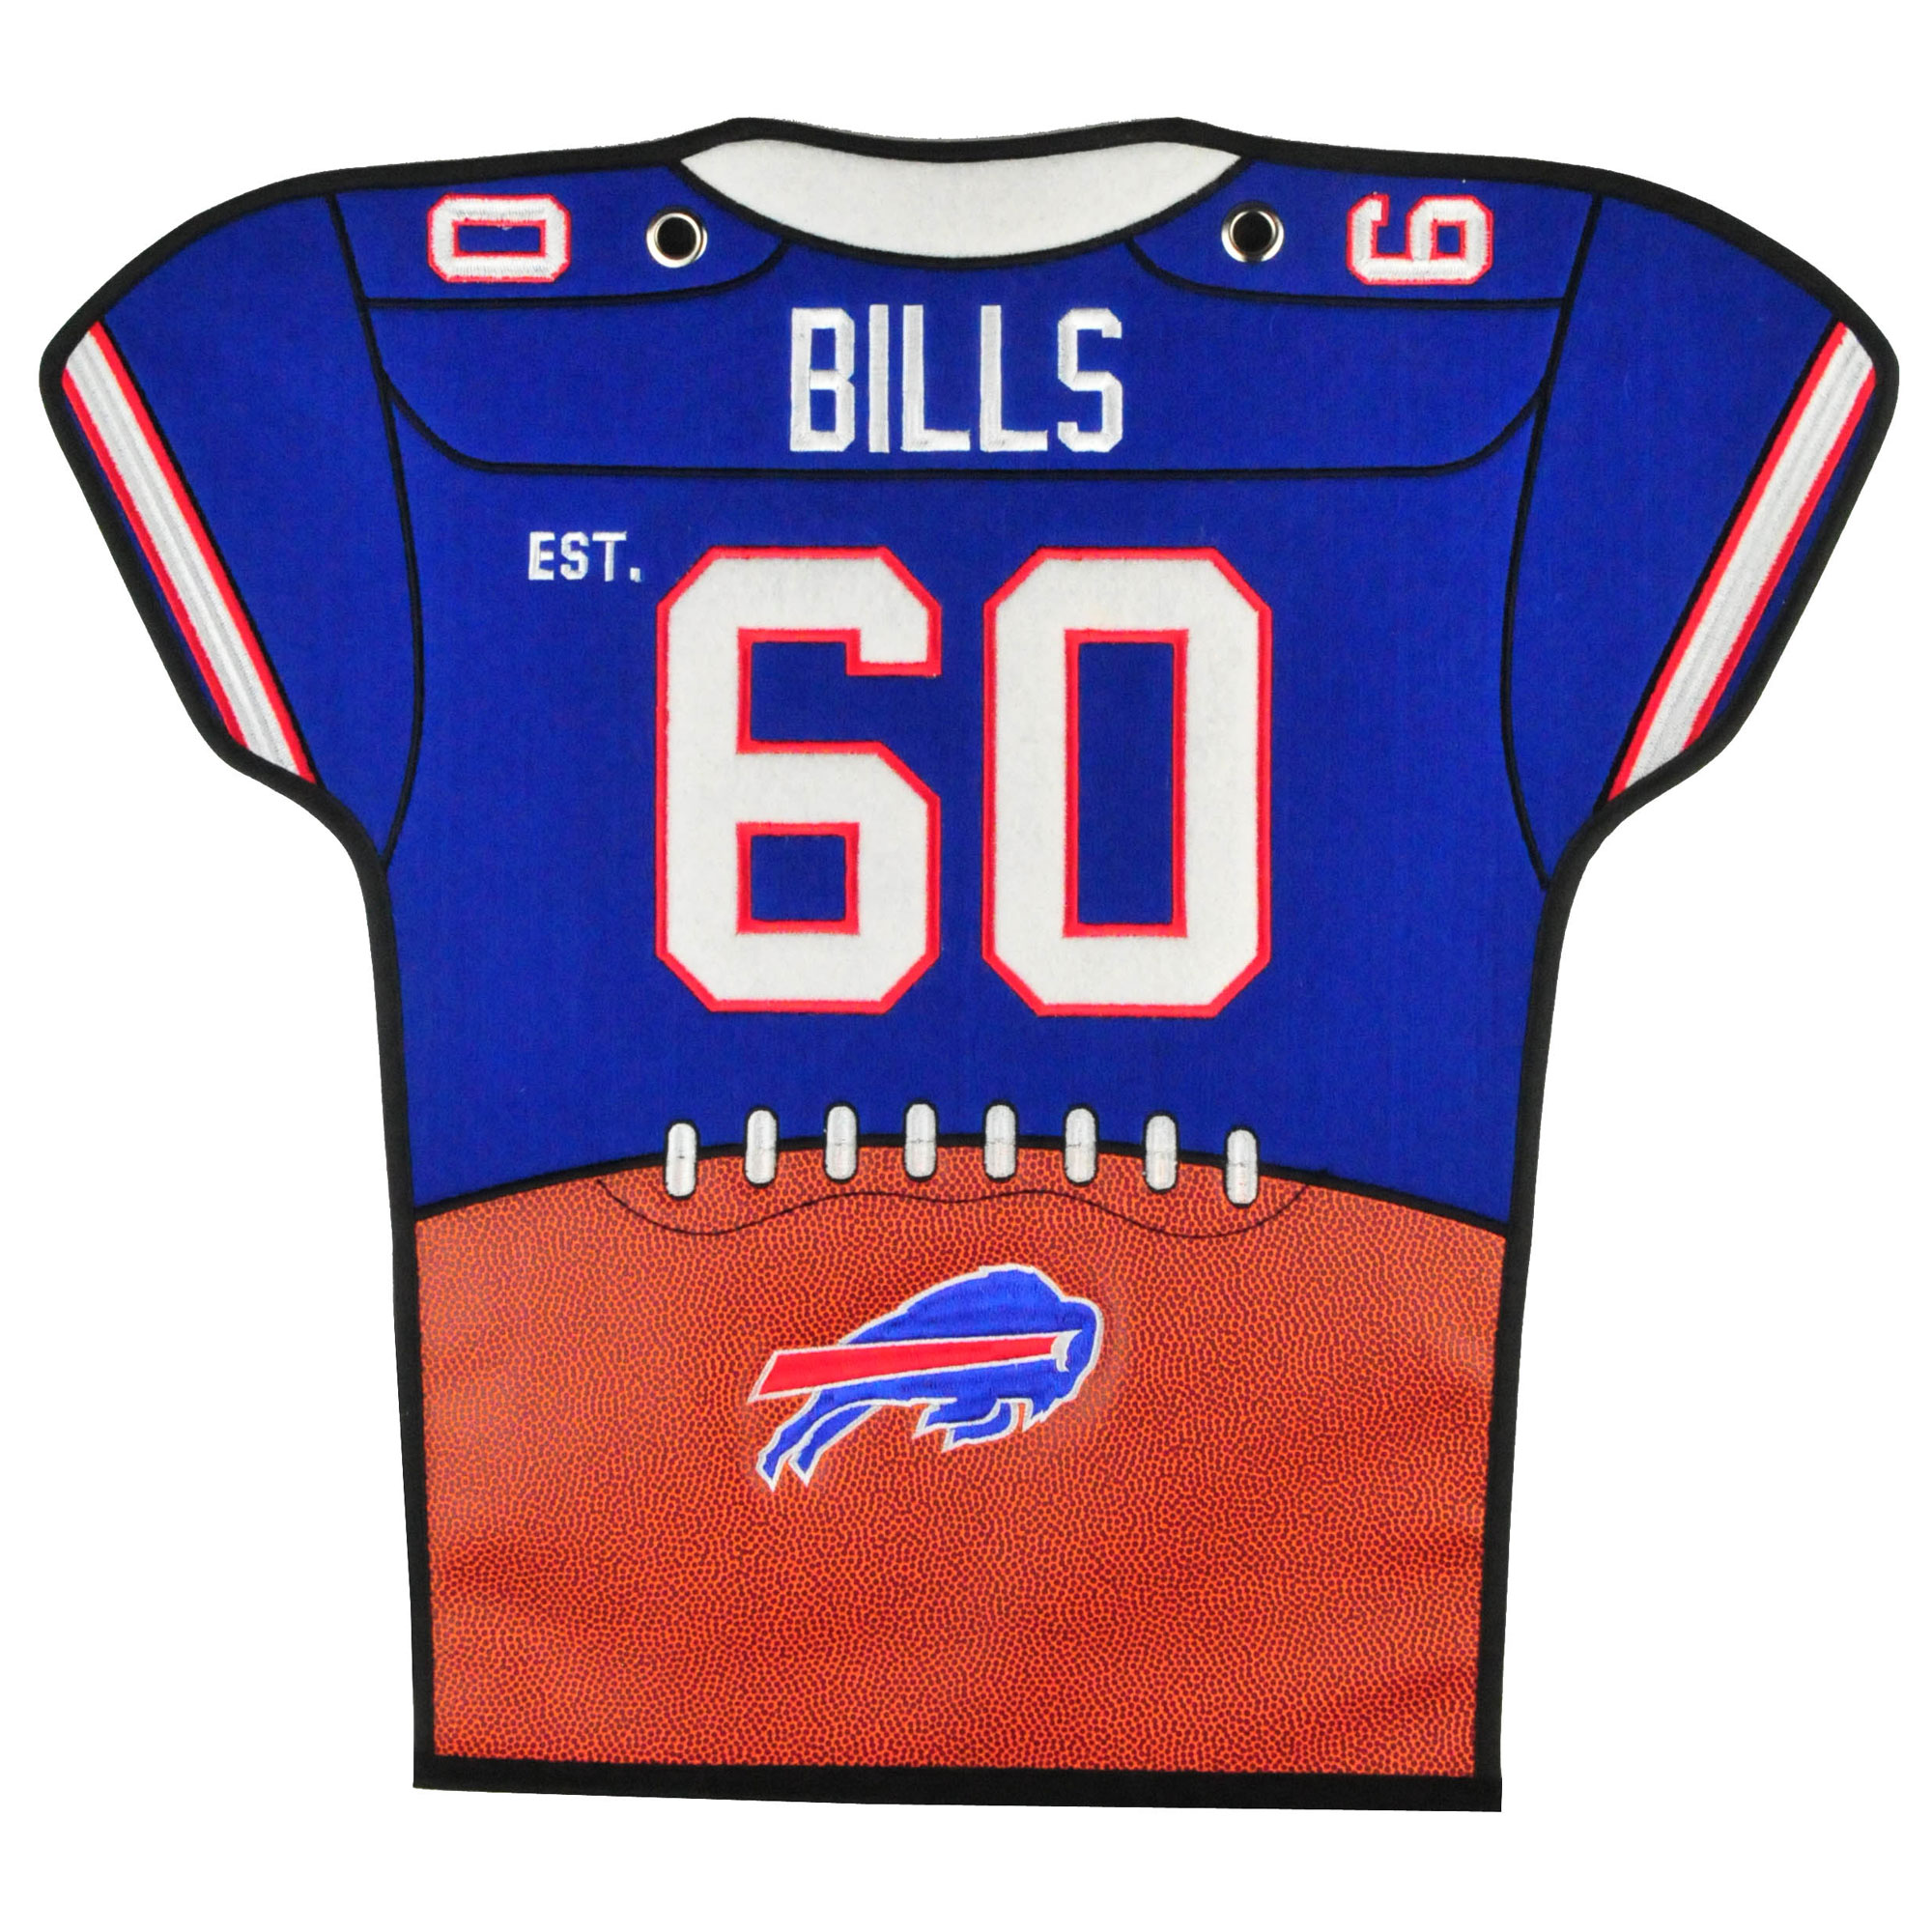 Buffalo Bills 20'' x 18'' Jersey Traditions Banner - No Size